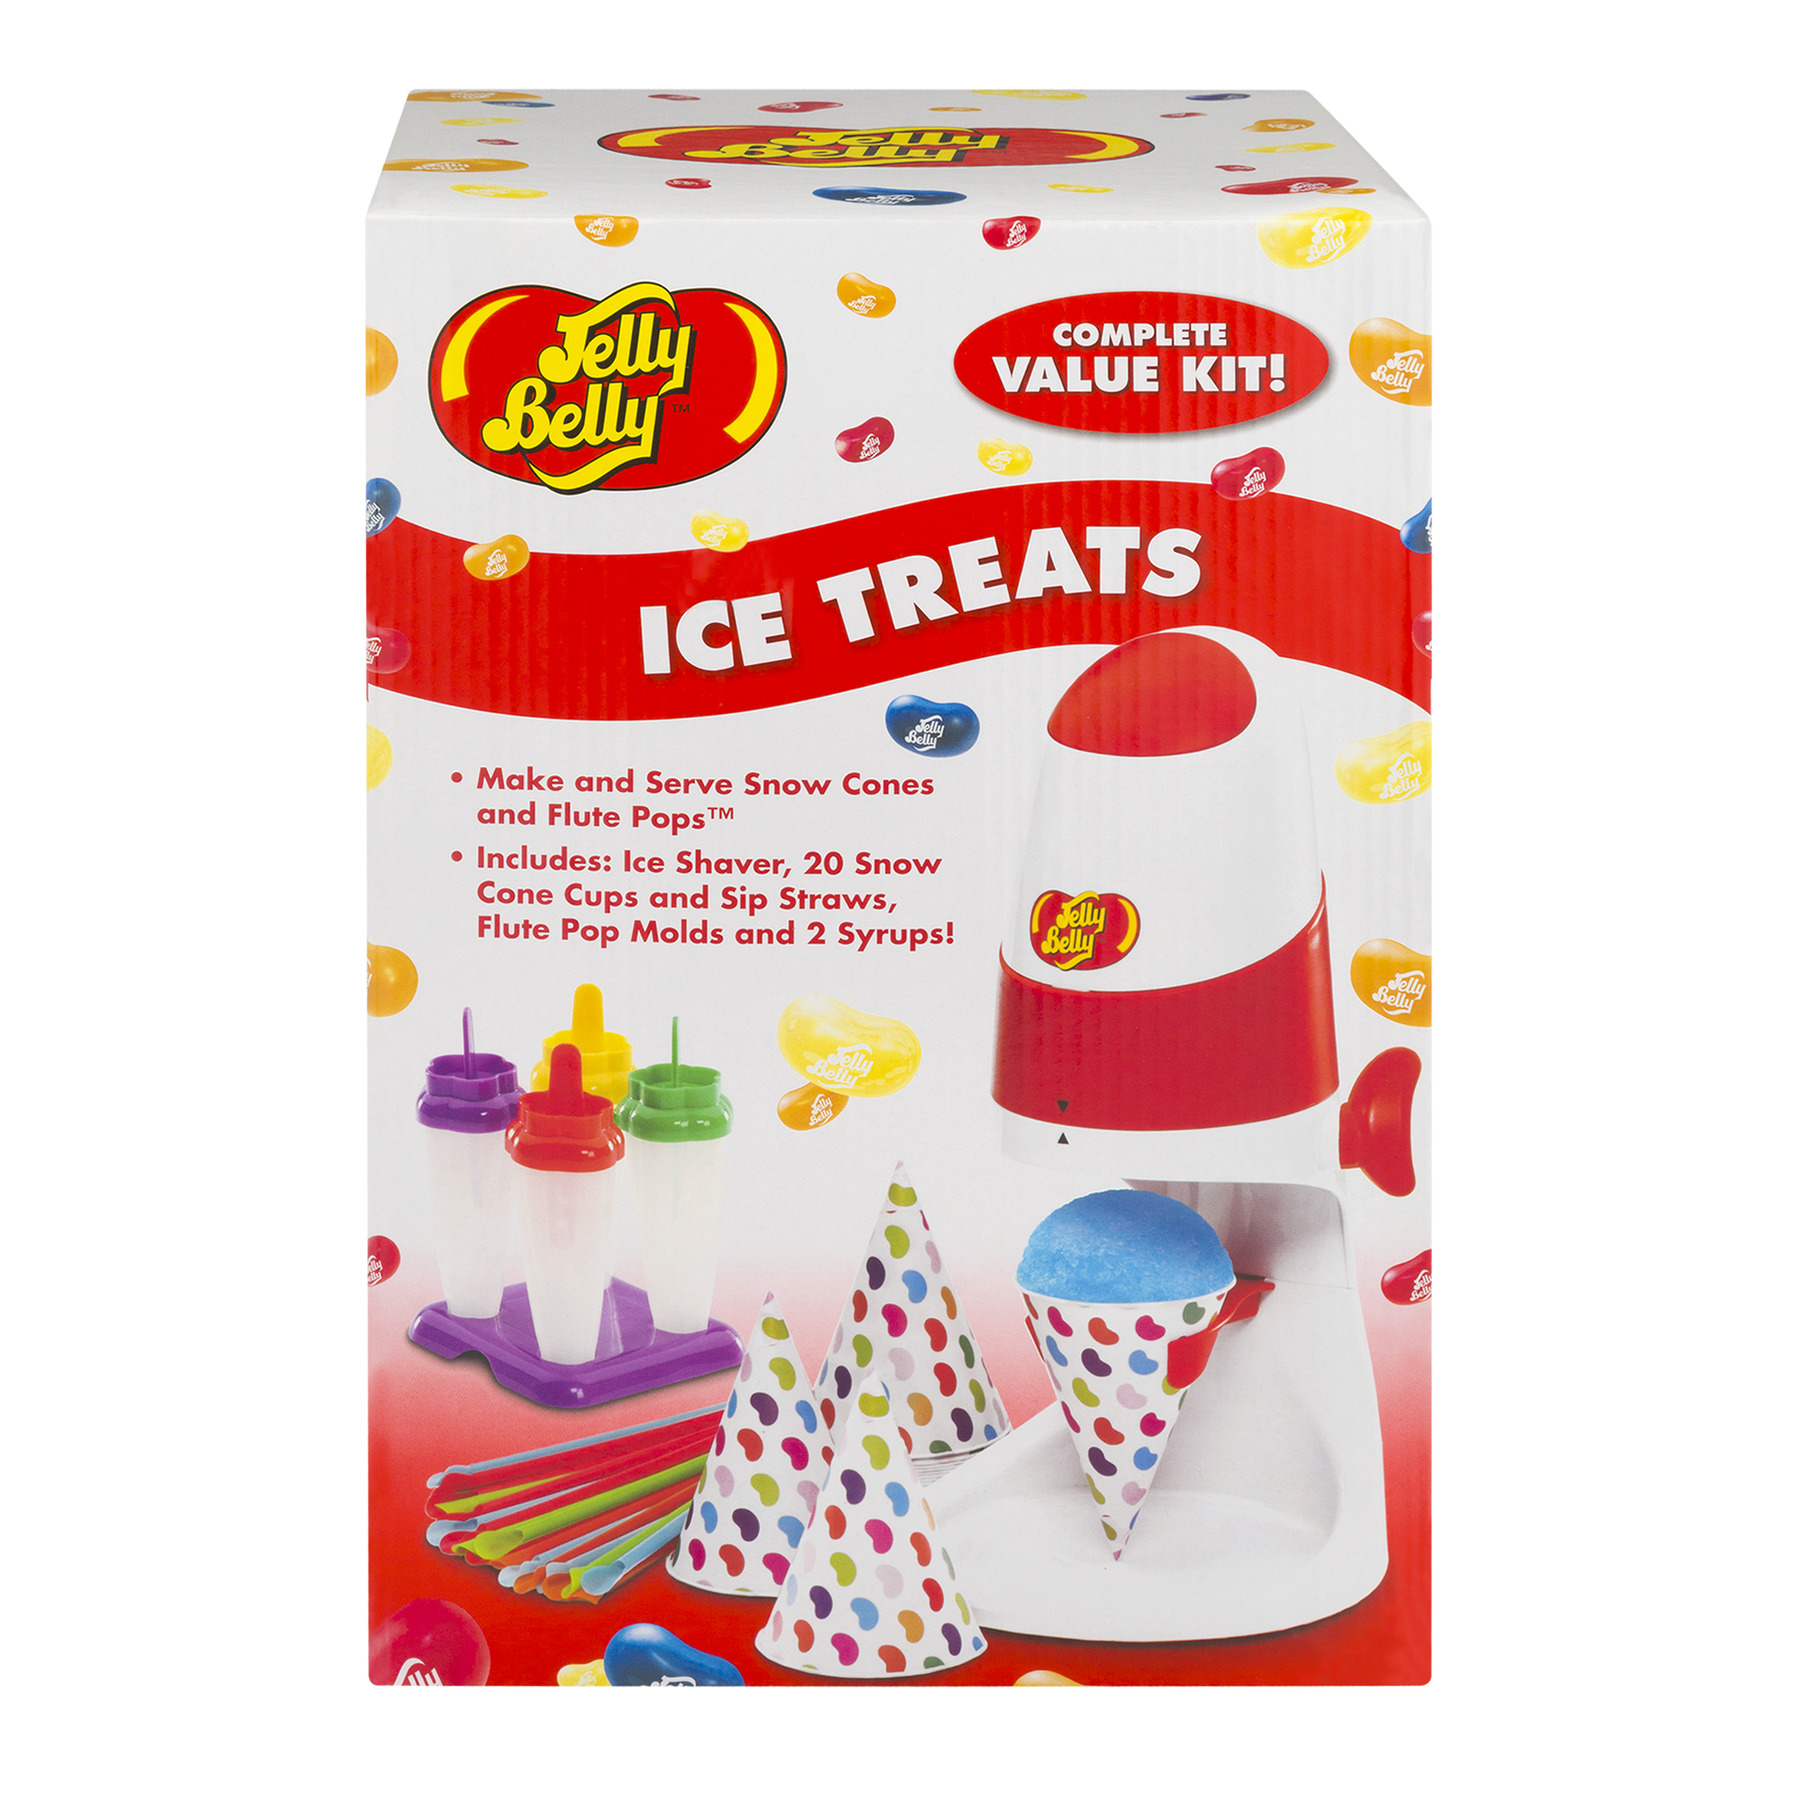 Jelly Belly Ice Treats Complete Value Kit, 1.0 KIT